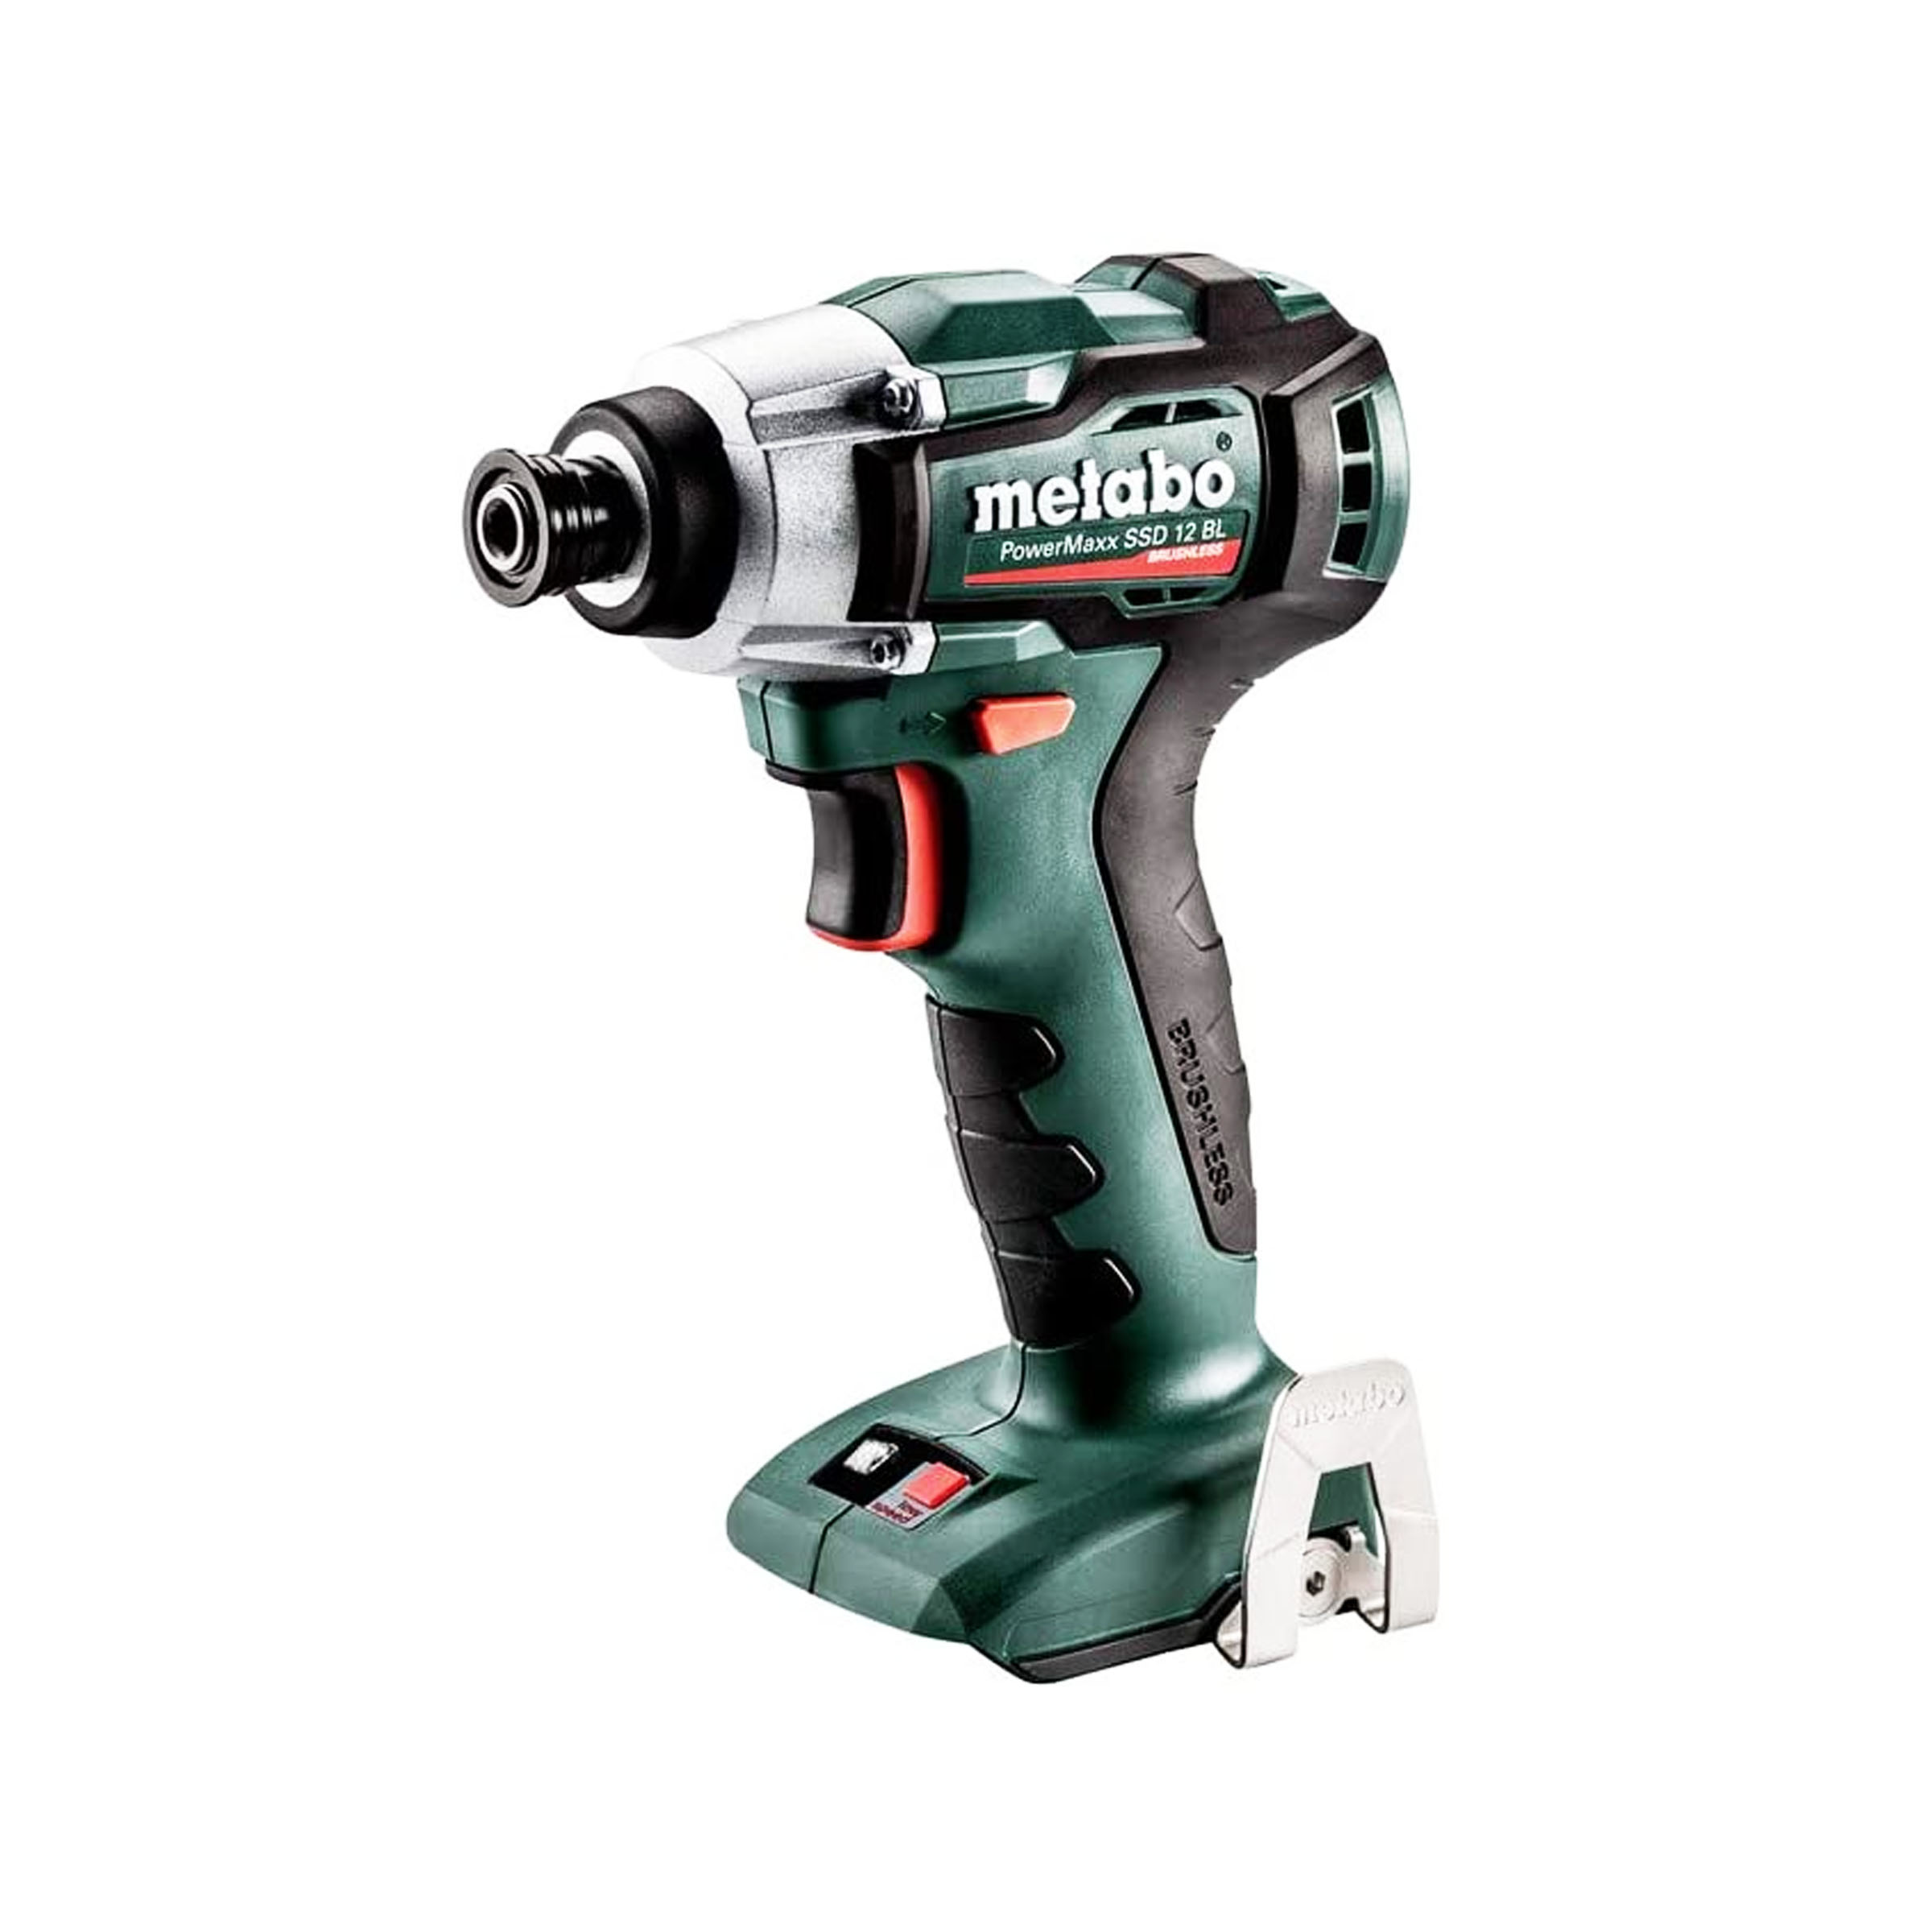 toptopdeal-Metabo 601115890 Rechargeable Impact Wrench SSD 12 BL (12 V Without Battery, with Work Light MetaLoc Case Insert, Belt Hook, Bit Depot Compact Design)